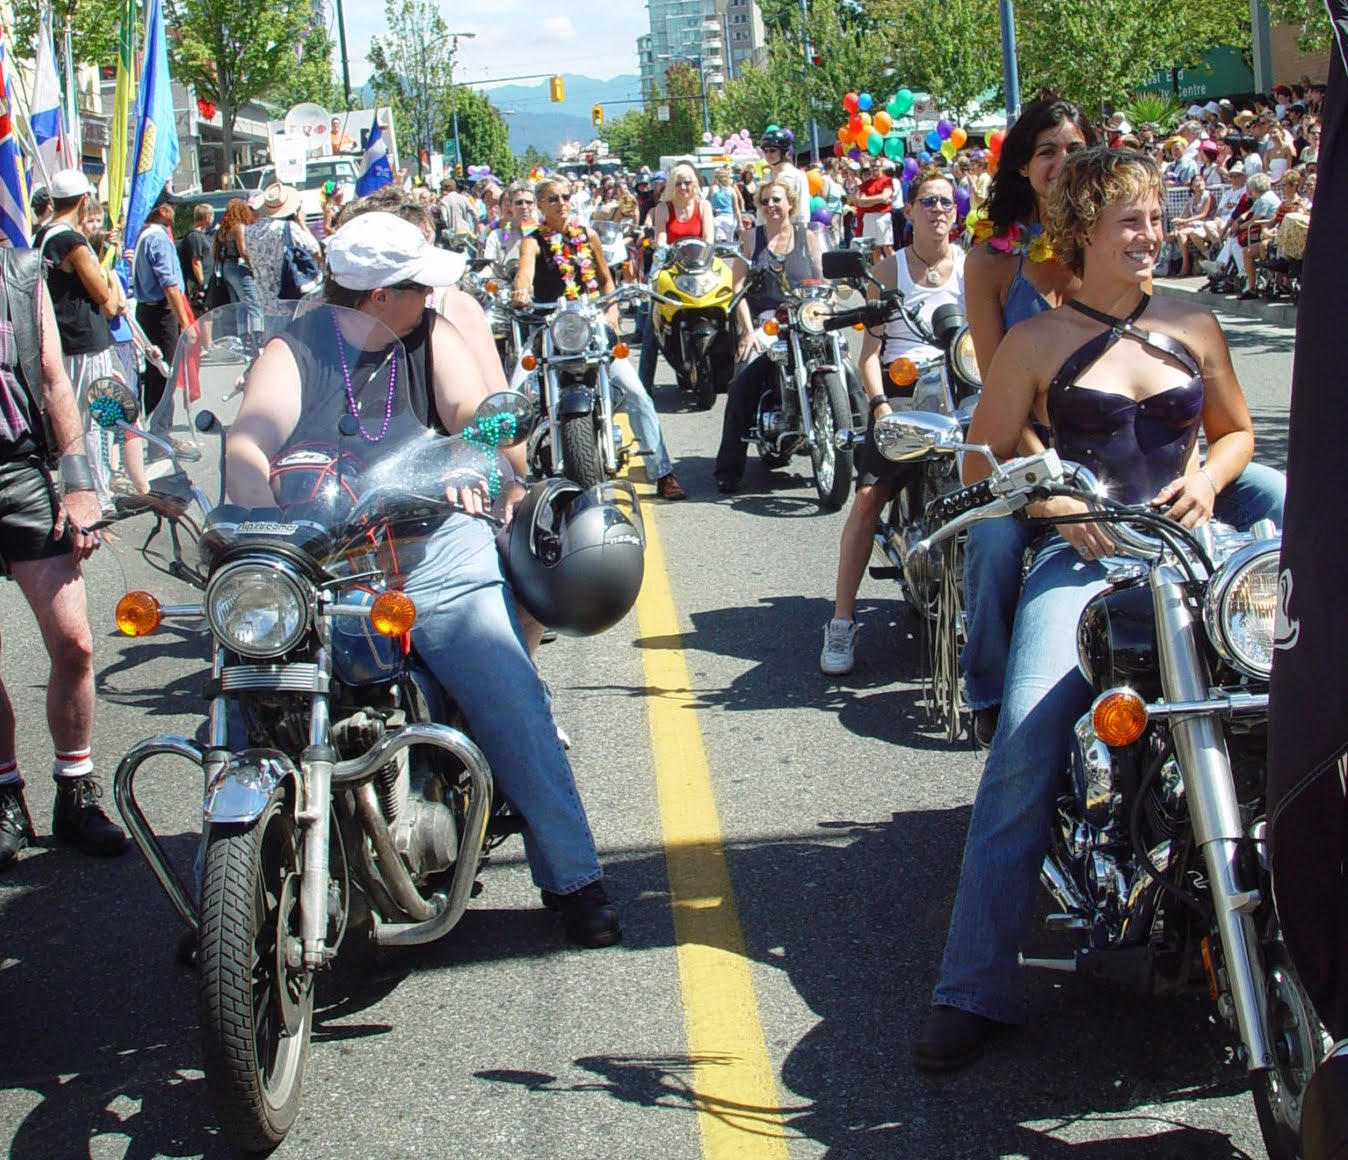 Dykes on Bikes in the Pride Parade